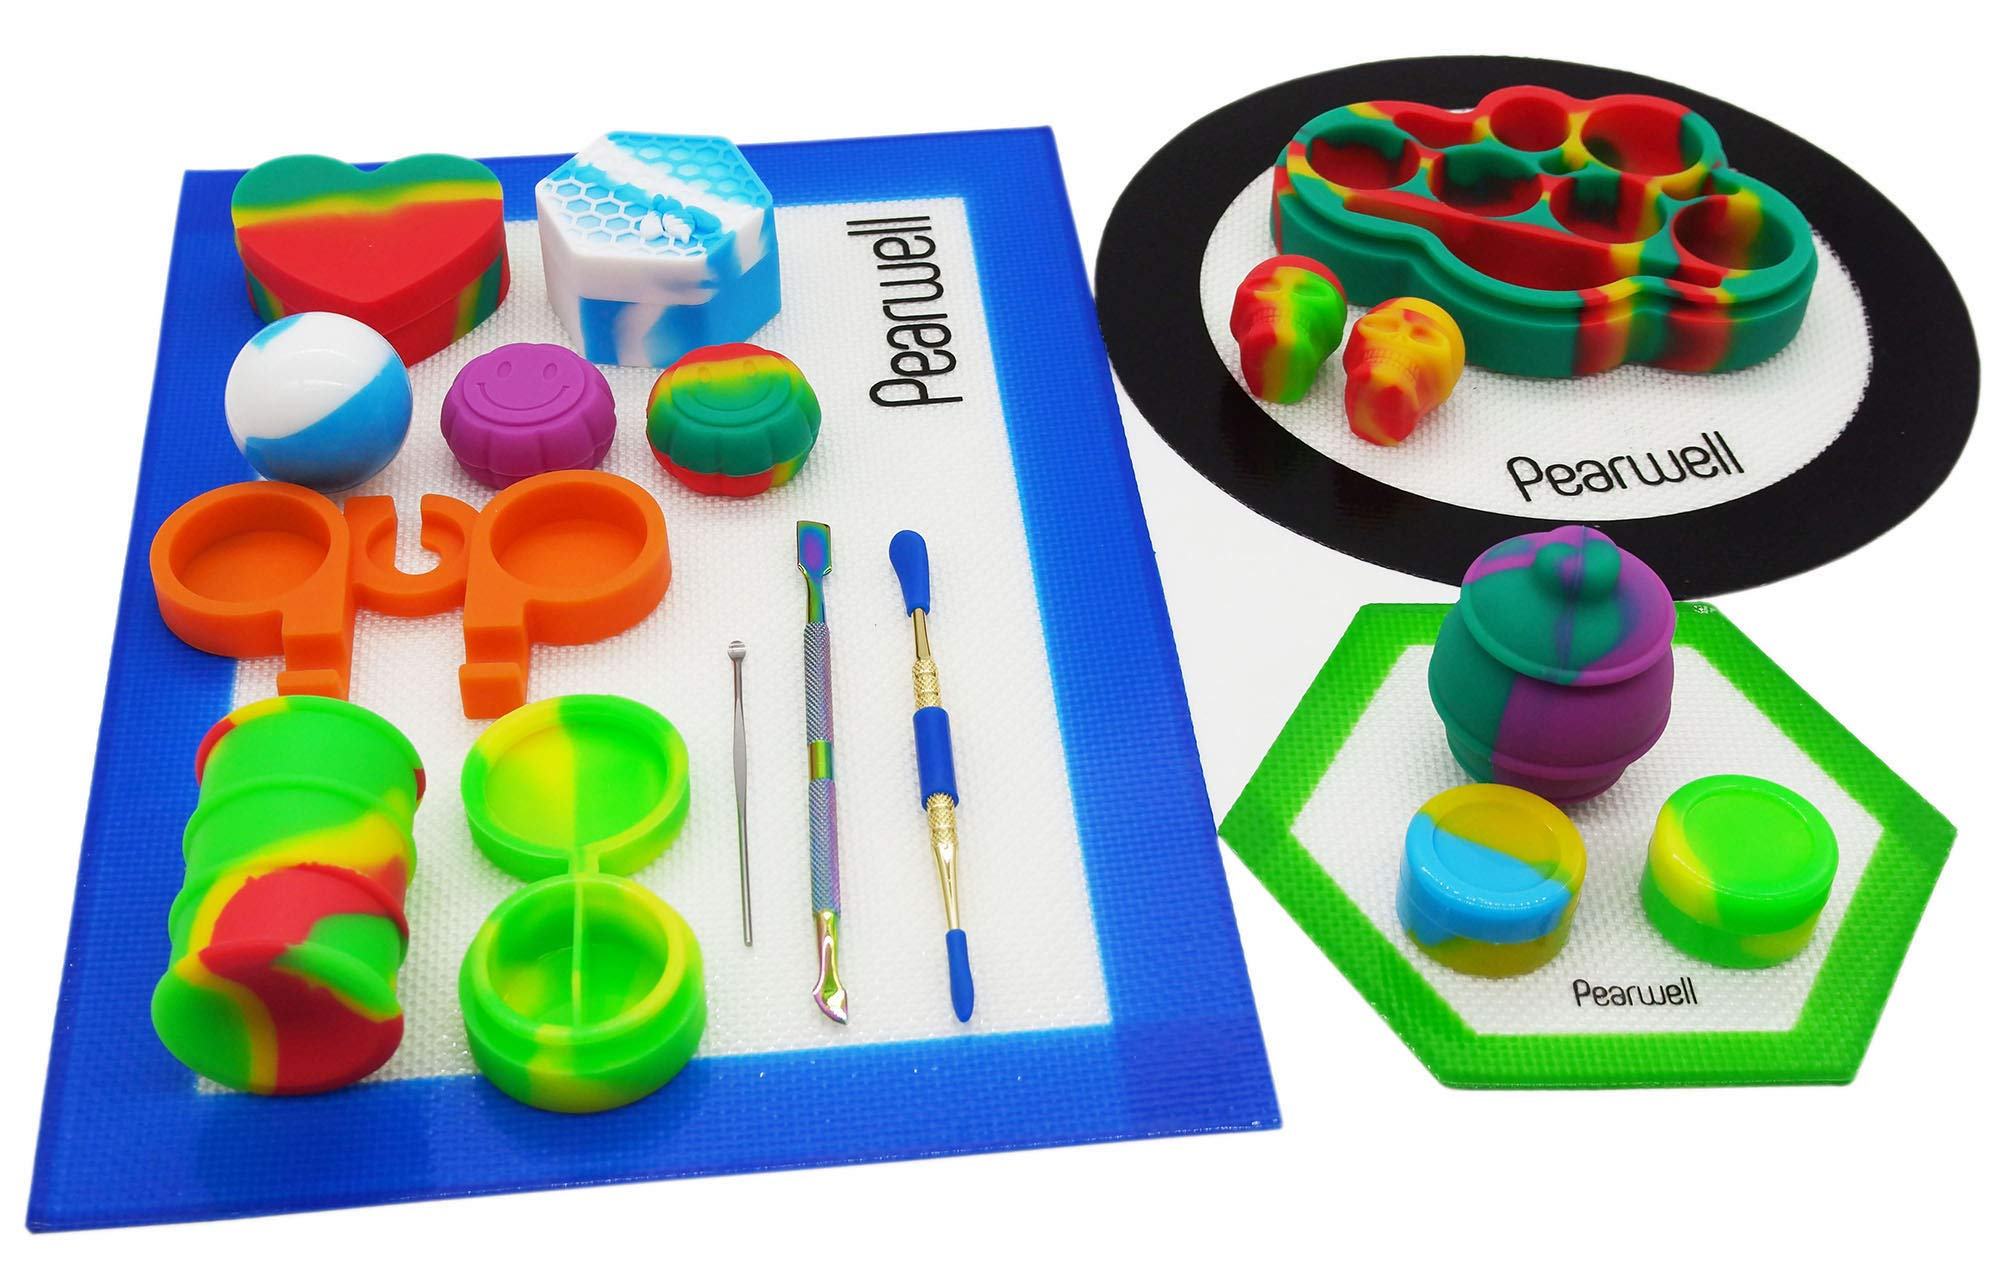 Pearwell Silicone Wax Jar Kit (Set of 20), 1 Blue Rectangle Mat + 1 Black Round Mat + 1 Green Hexagon Mat + 3 Carving Tools + 13 Silicone Containers + 1 Silicone Holder (20)